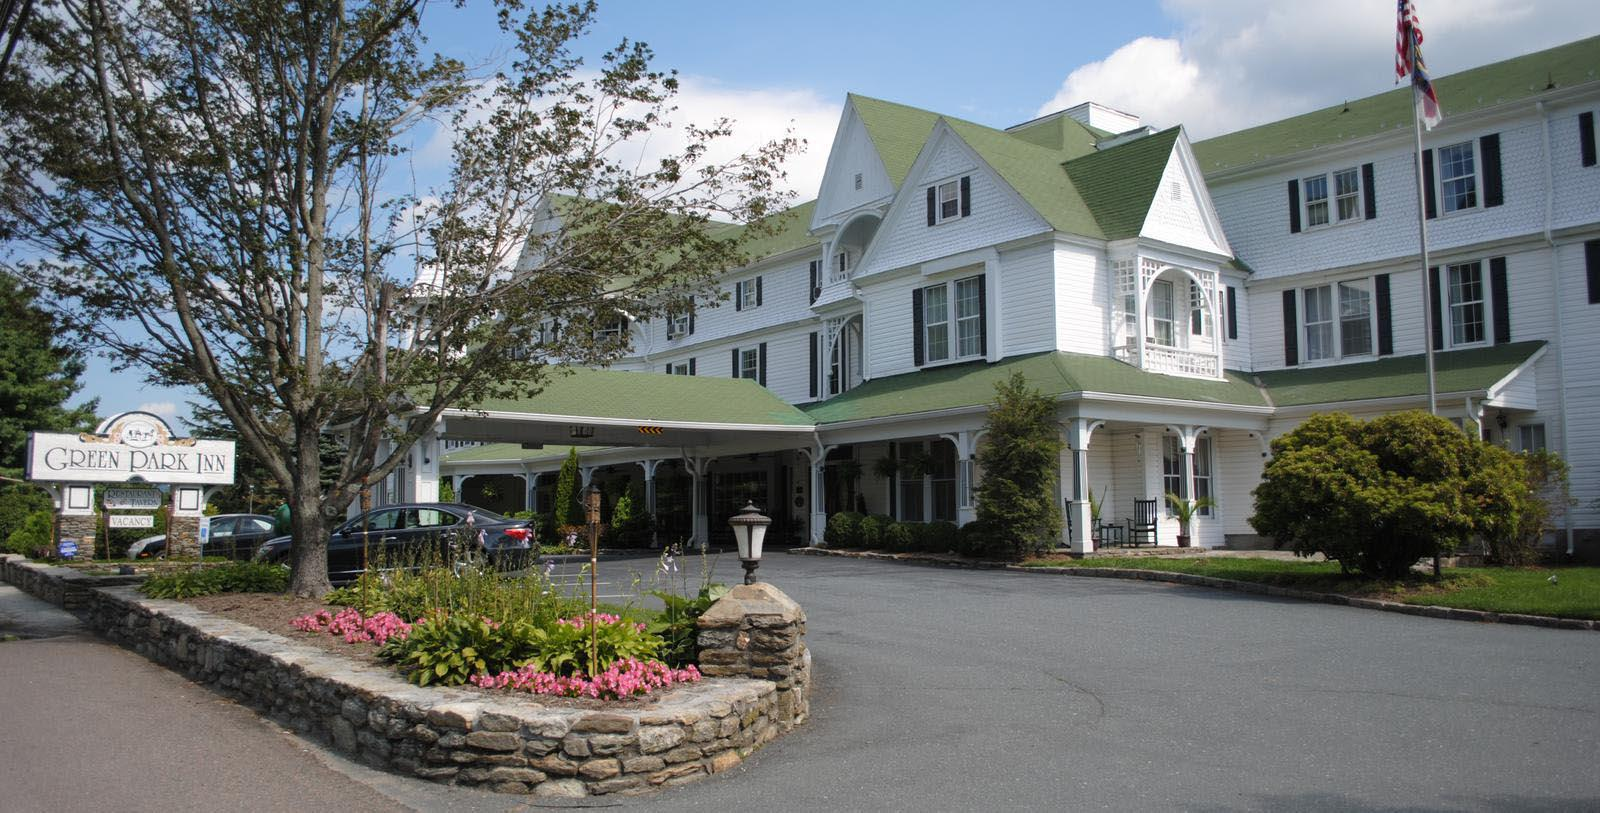 Image of hotel exterior at Green Park Inn, 1891, Member of Historic Hotels of America, in Blowing Rock, North Carolina, Special Offers, Discounted Rates, Families, Romantic Escape, Honeymoons, Anniversaries, Reunions